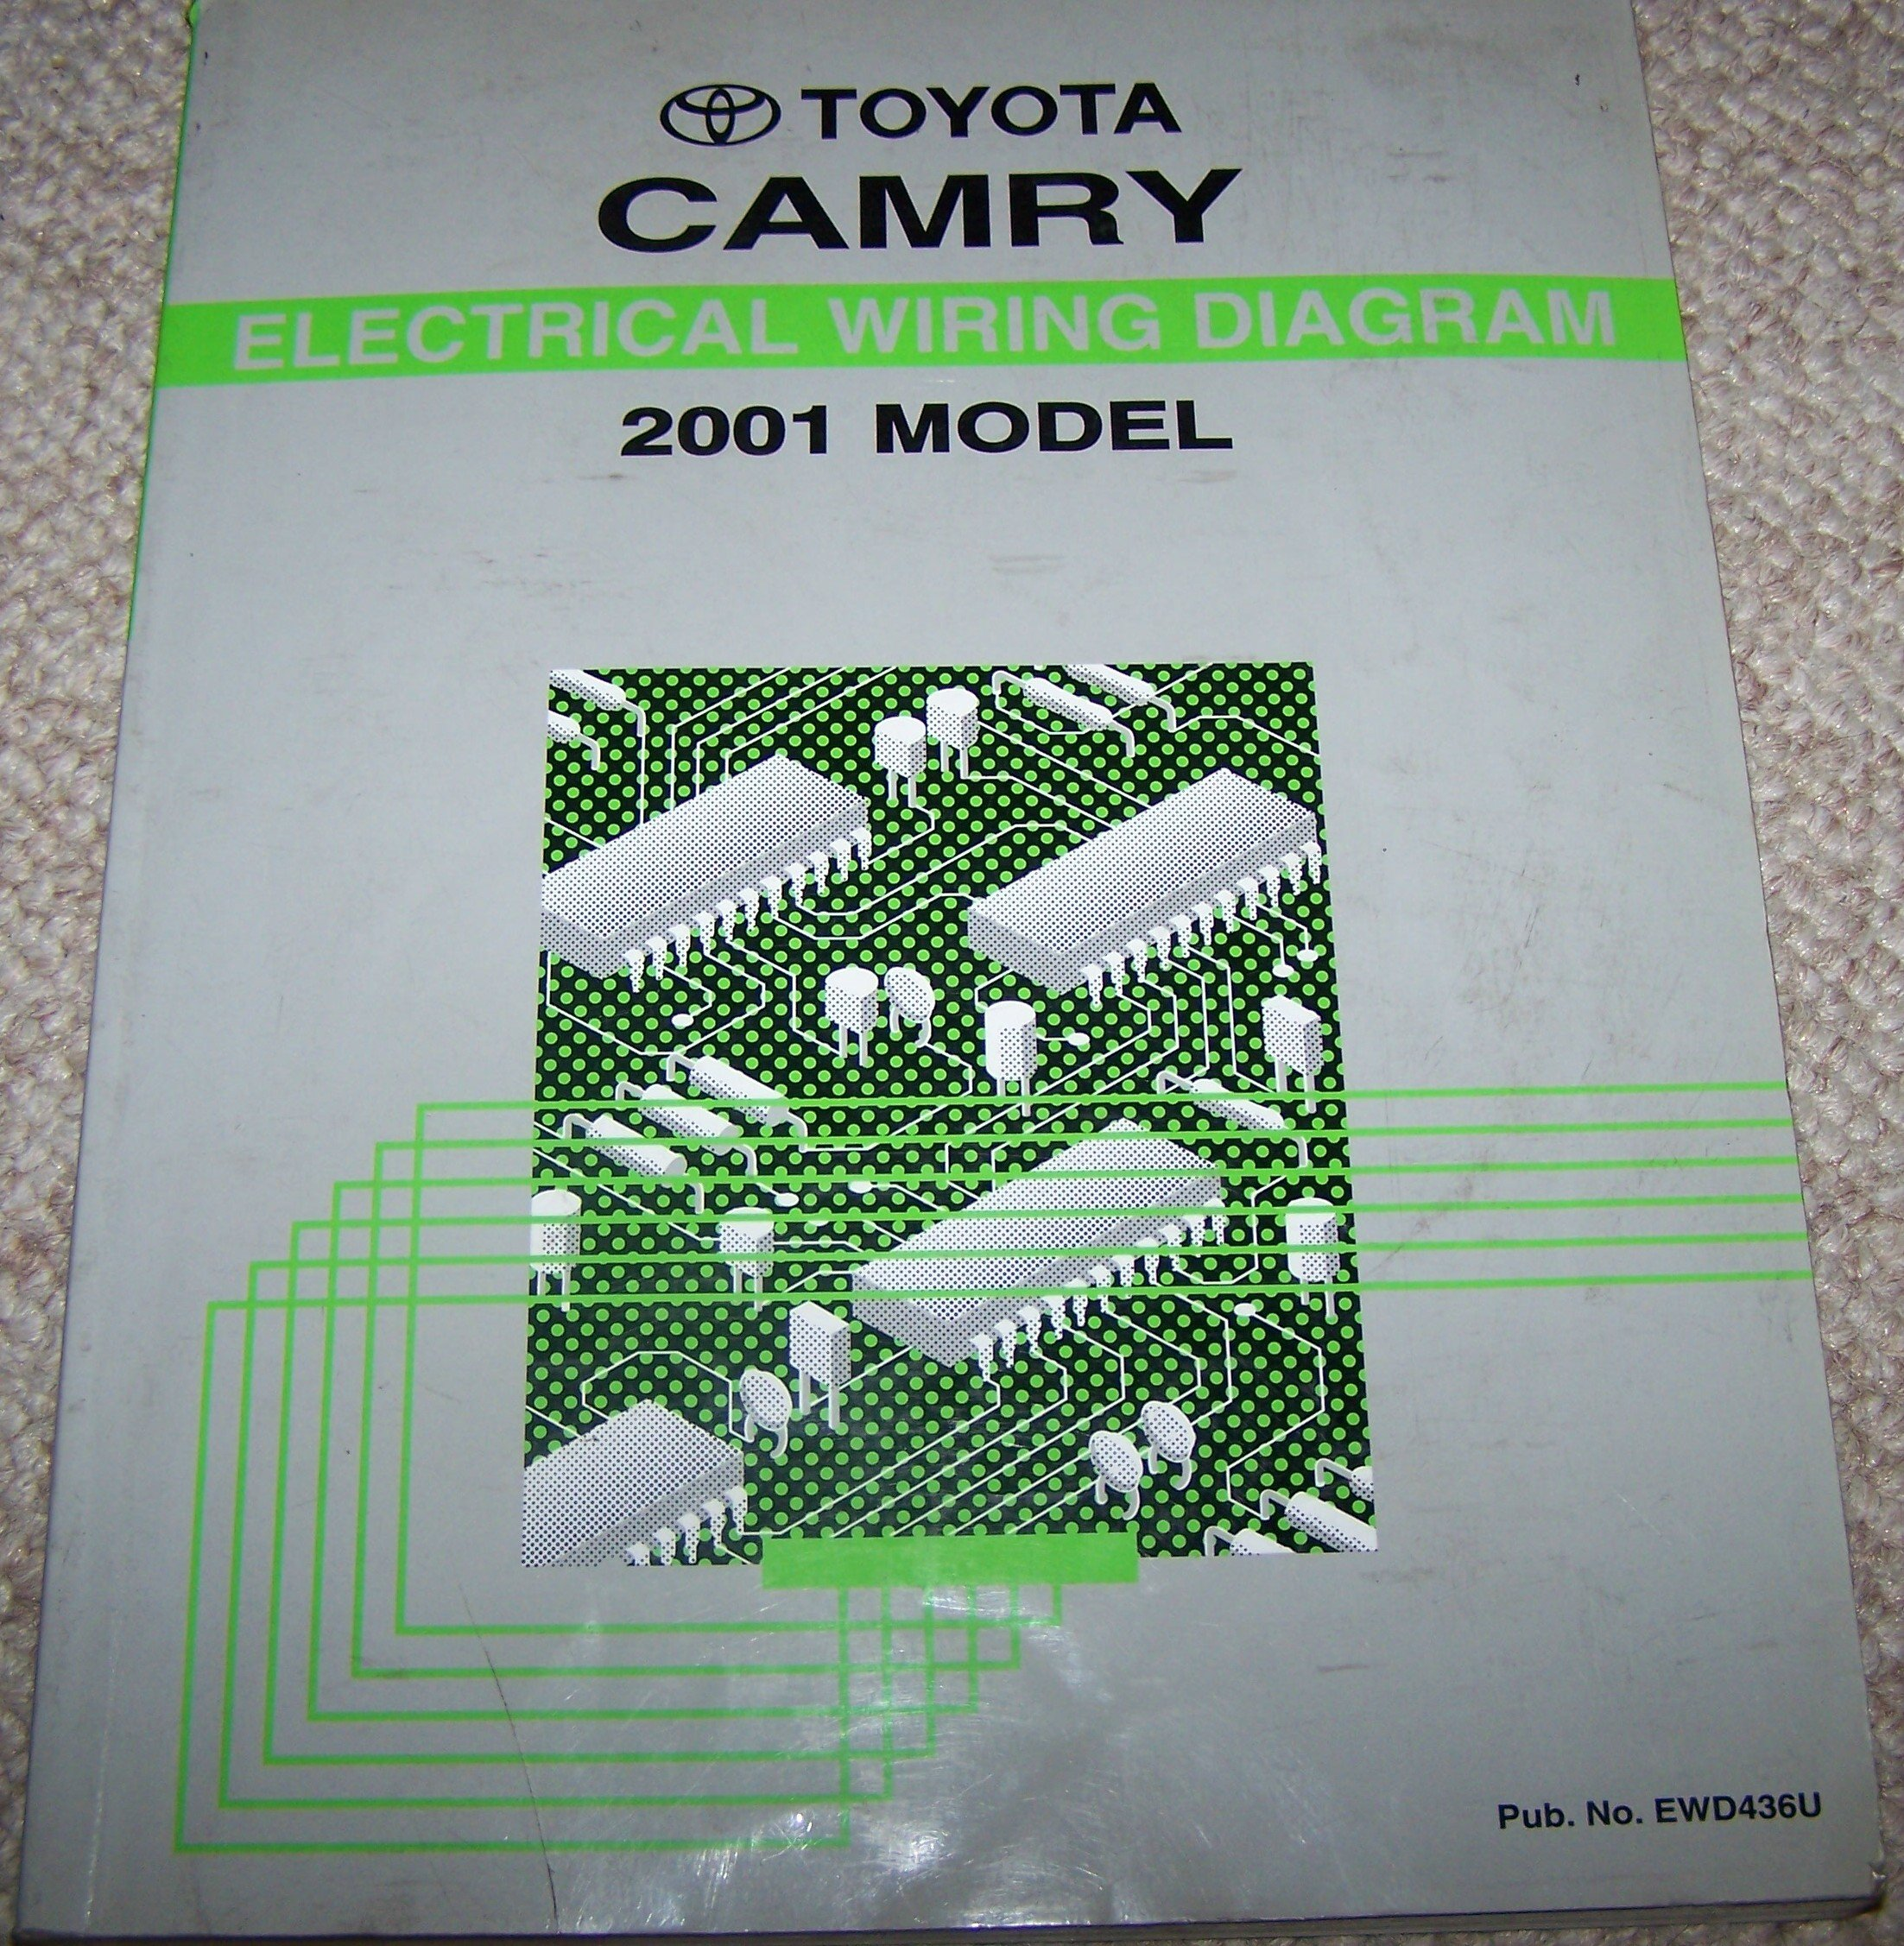 2001 toyota camry electrical wiring diagram manual paperback – 2000